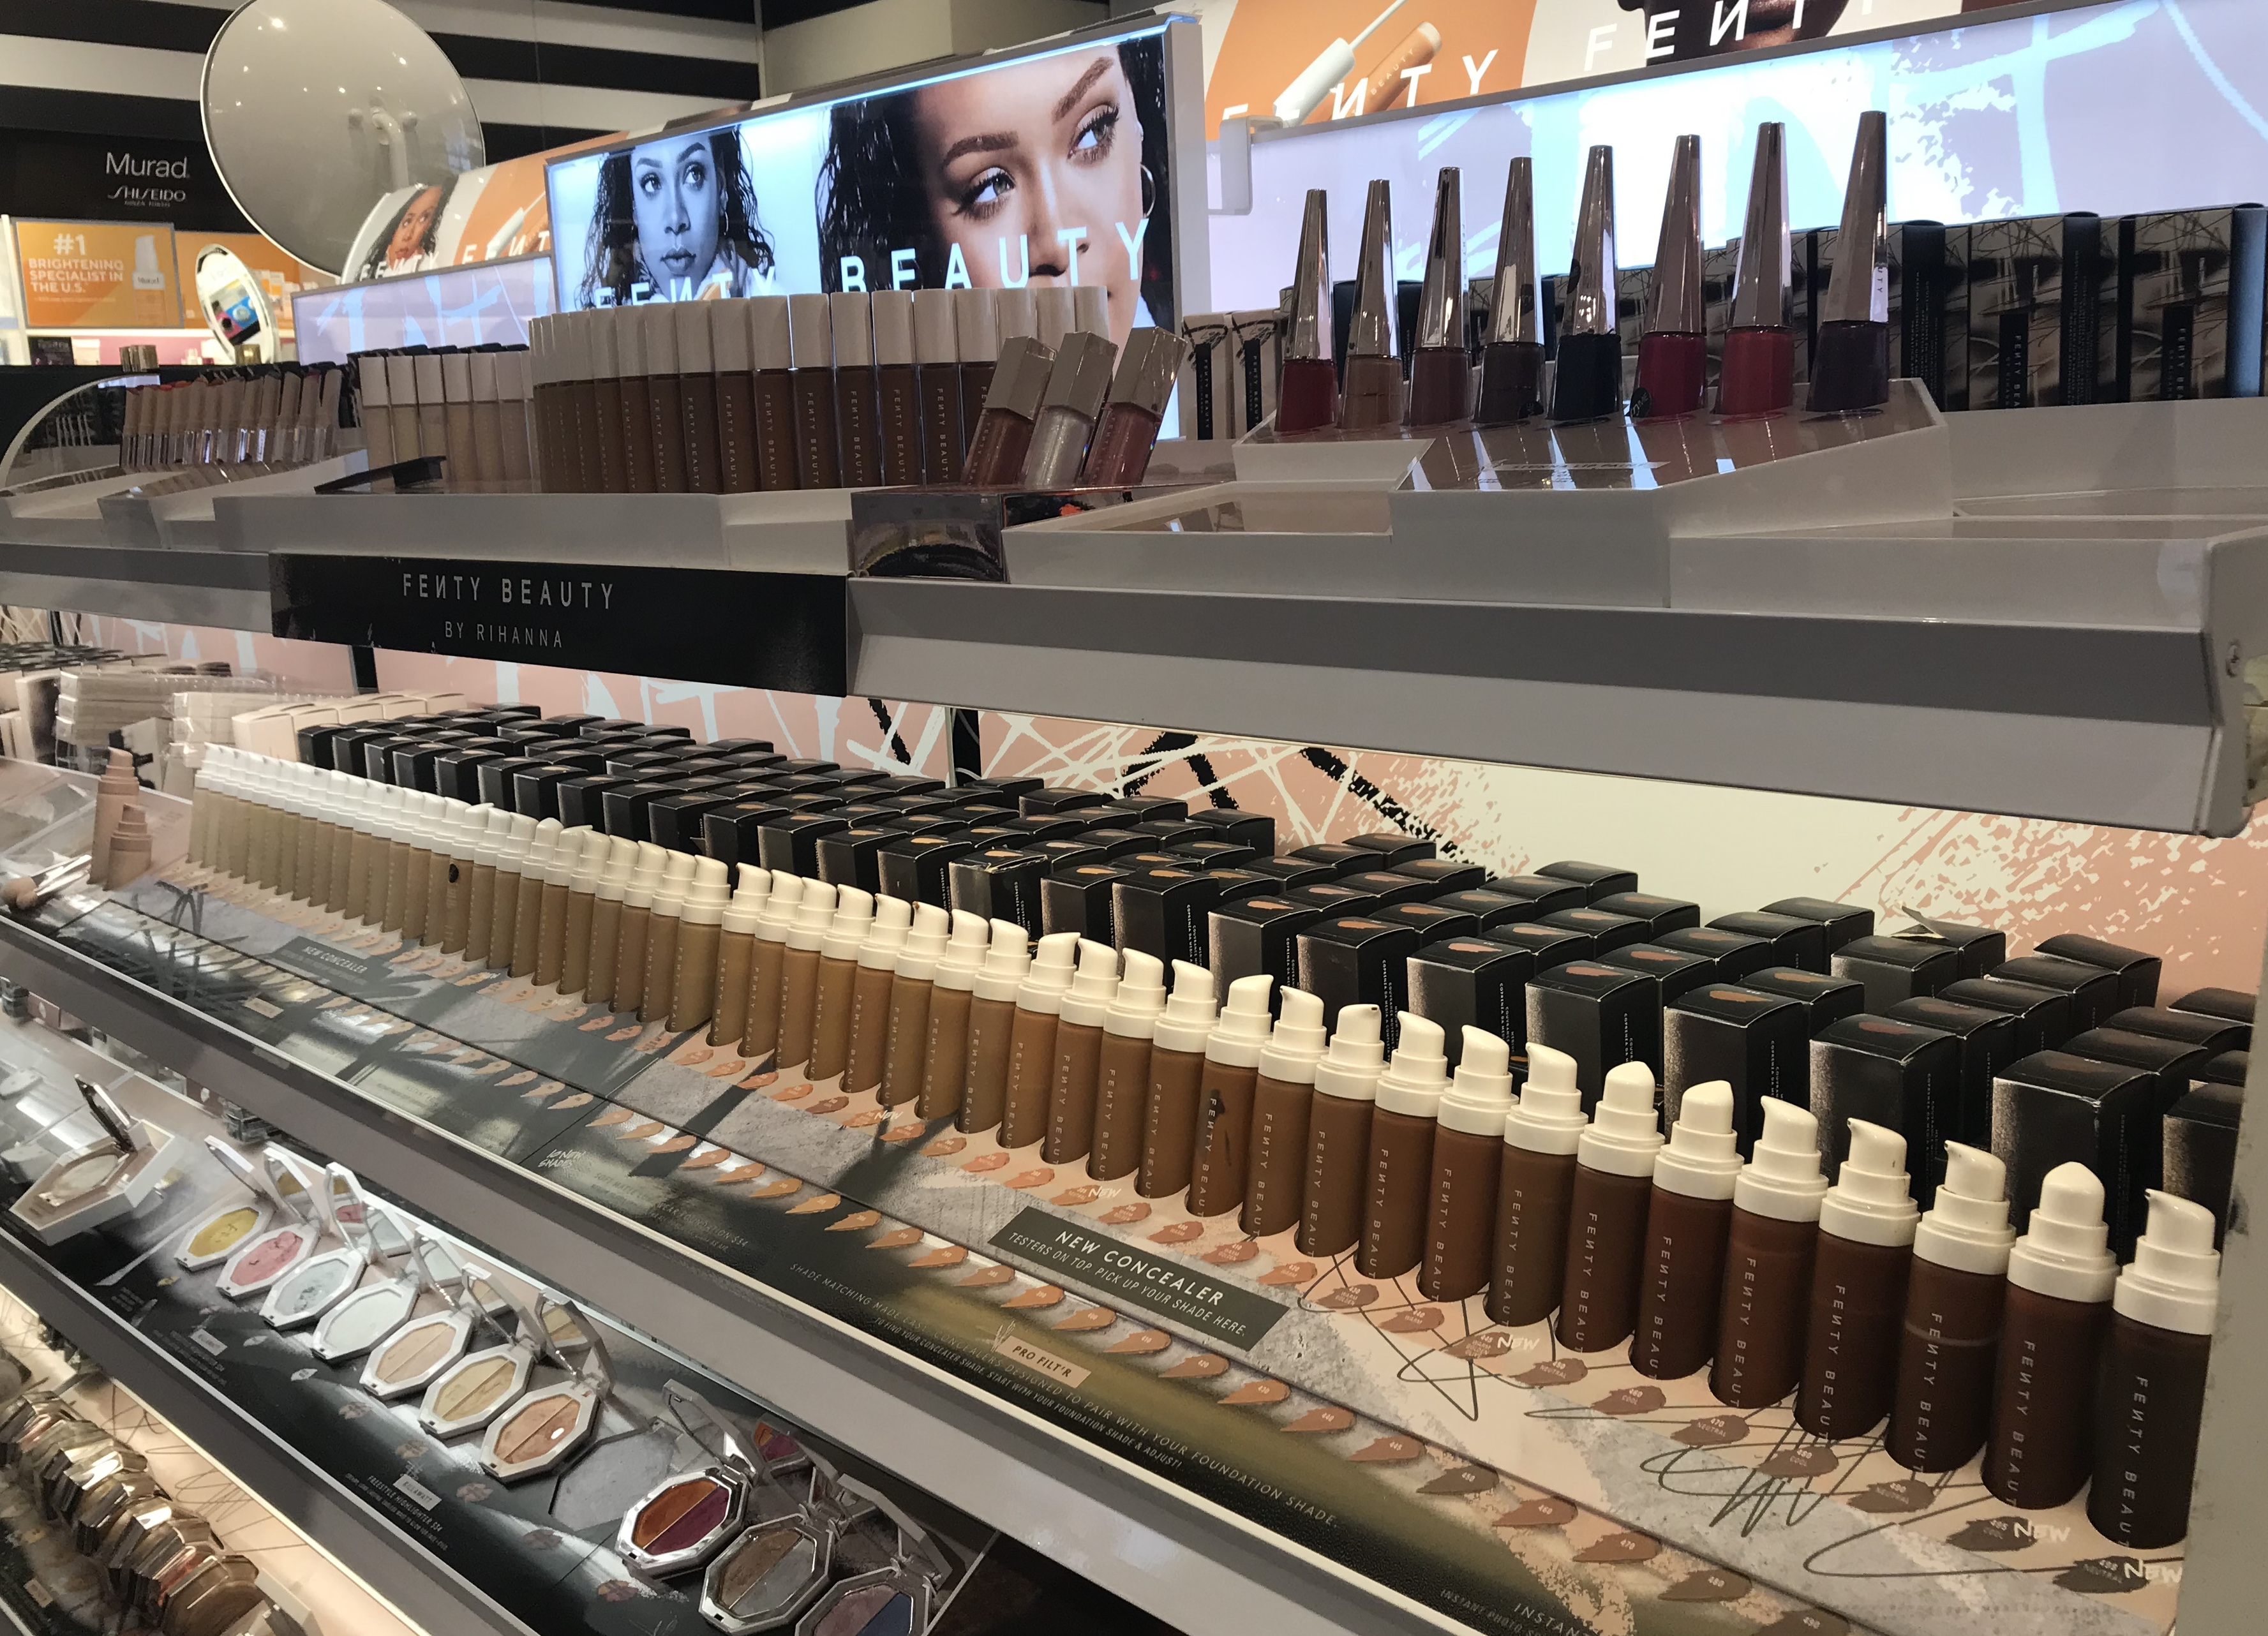 A white makeup rack of Fenty Beauty carrying 50 shades of concealer on the top row, 50 shades of foundation on the middle row, and 11 shimmering highlighters on the bottom row